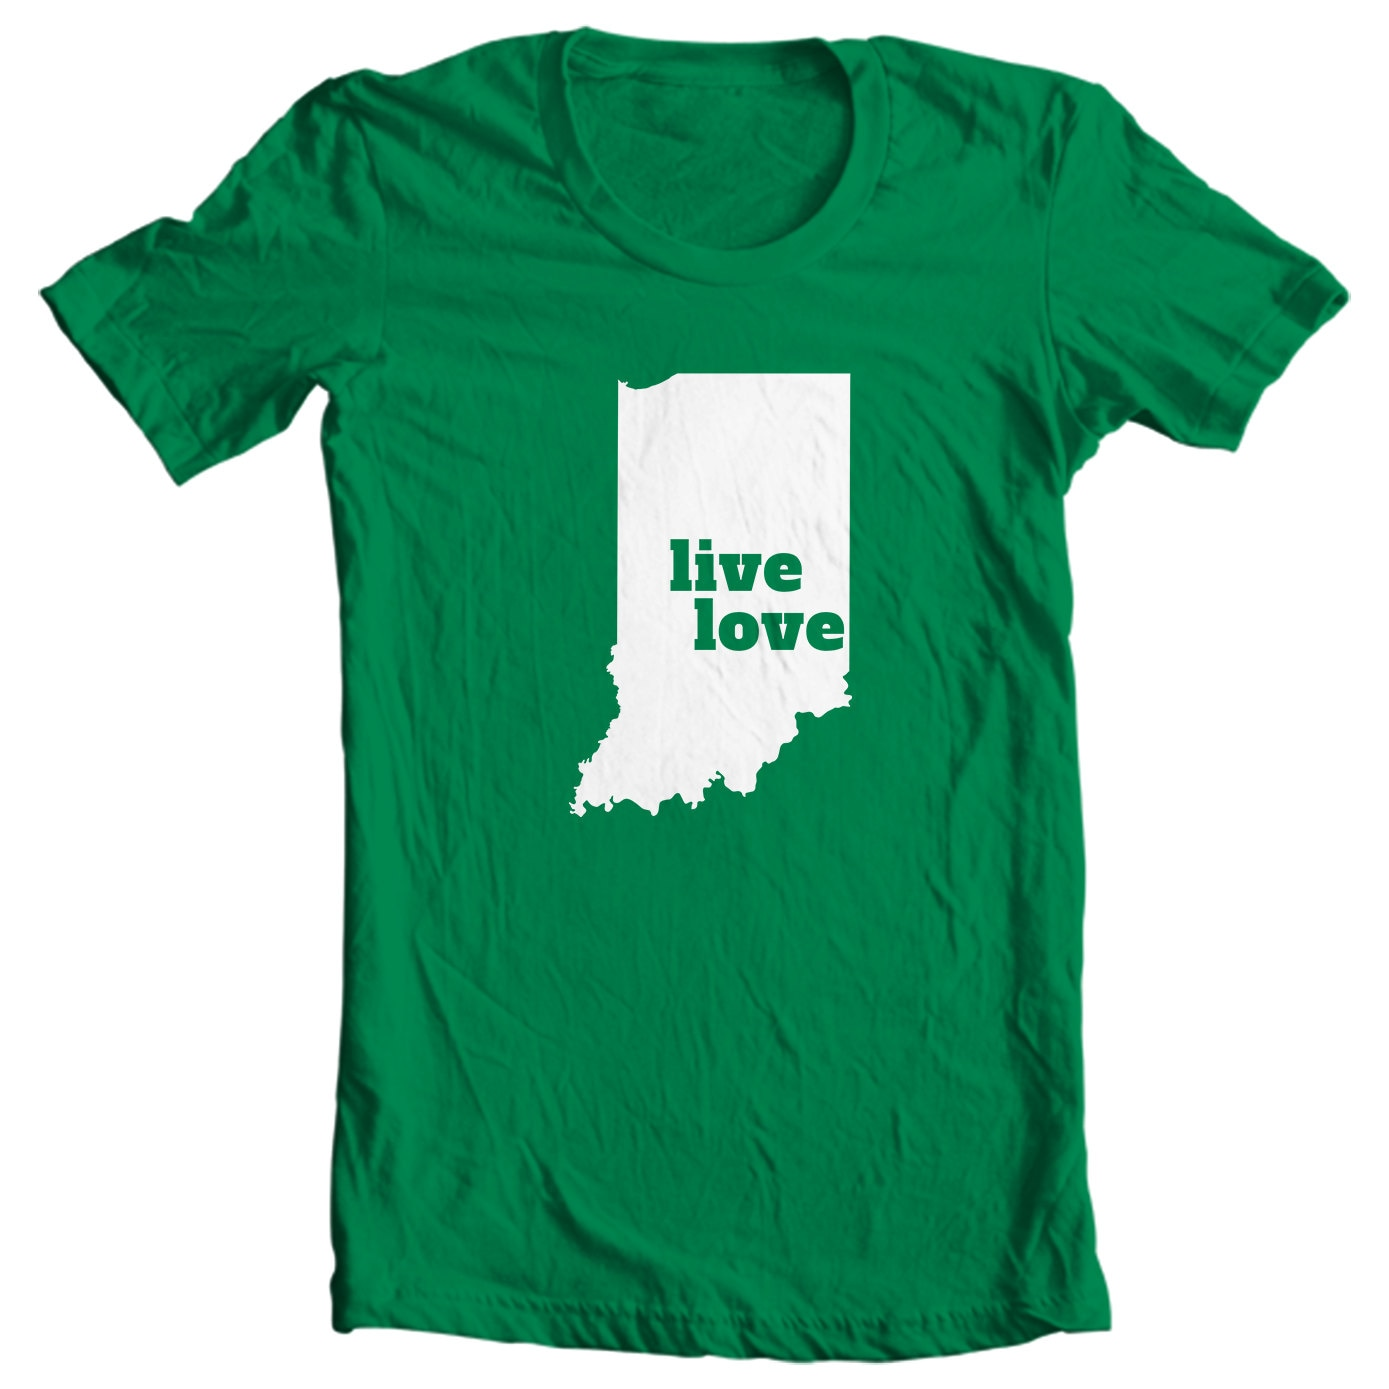 Indiana T-shirt - Live Love Indiana - My State Indiana T-shirt